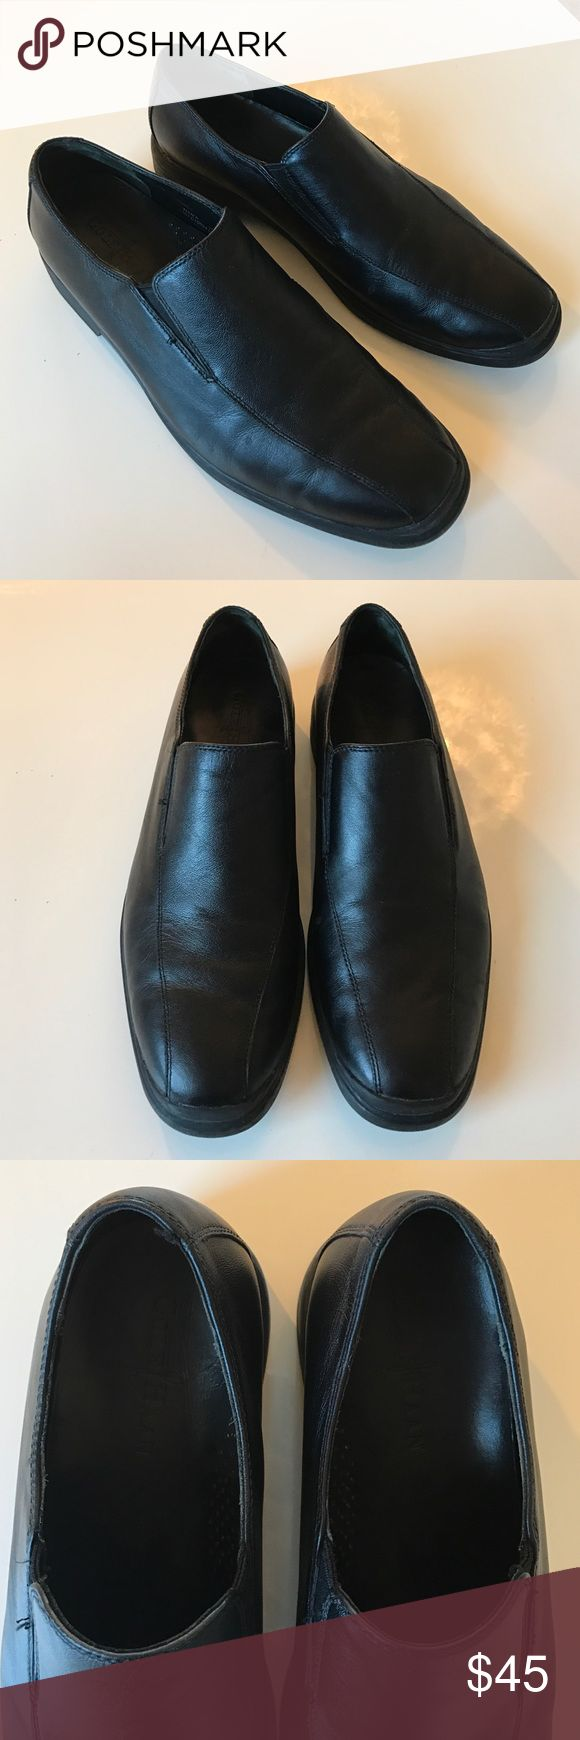 Cole Hann Men's Shoes Black Size 9M Great shoes in good condition. Very comfortable Men's Shoes. Cole Haan Shoes Loafers & Slip-Ons